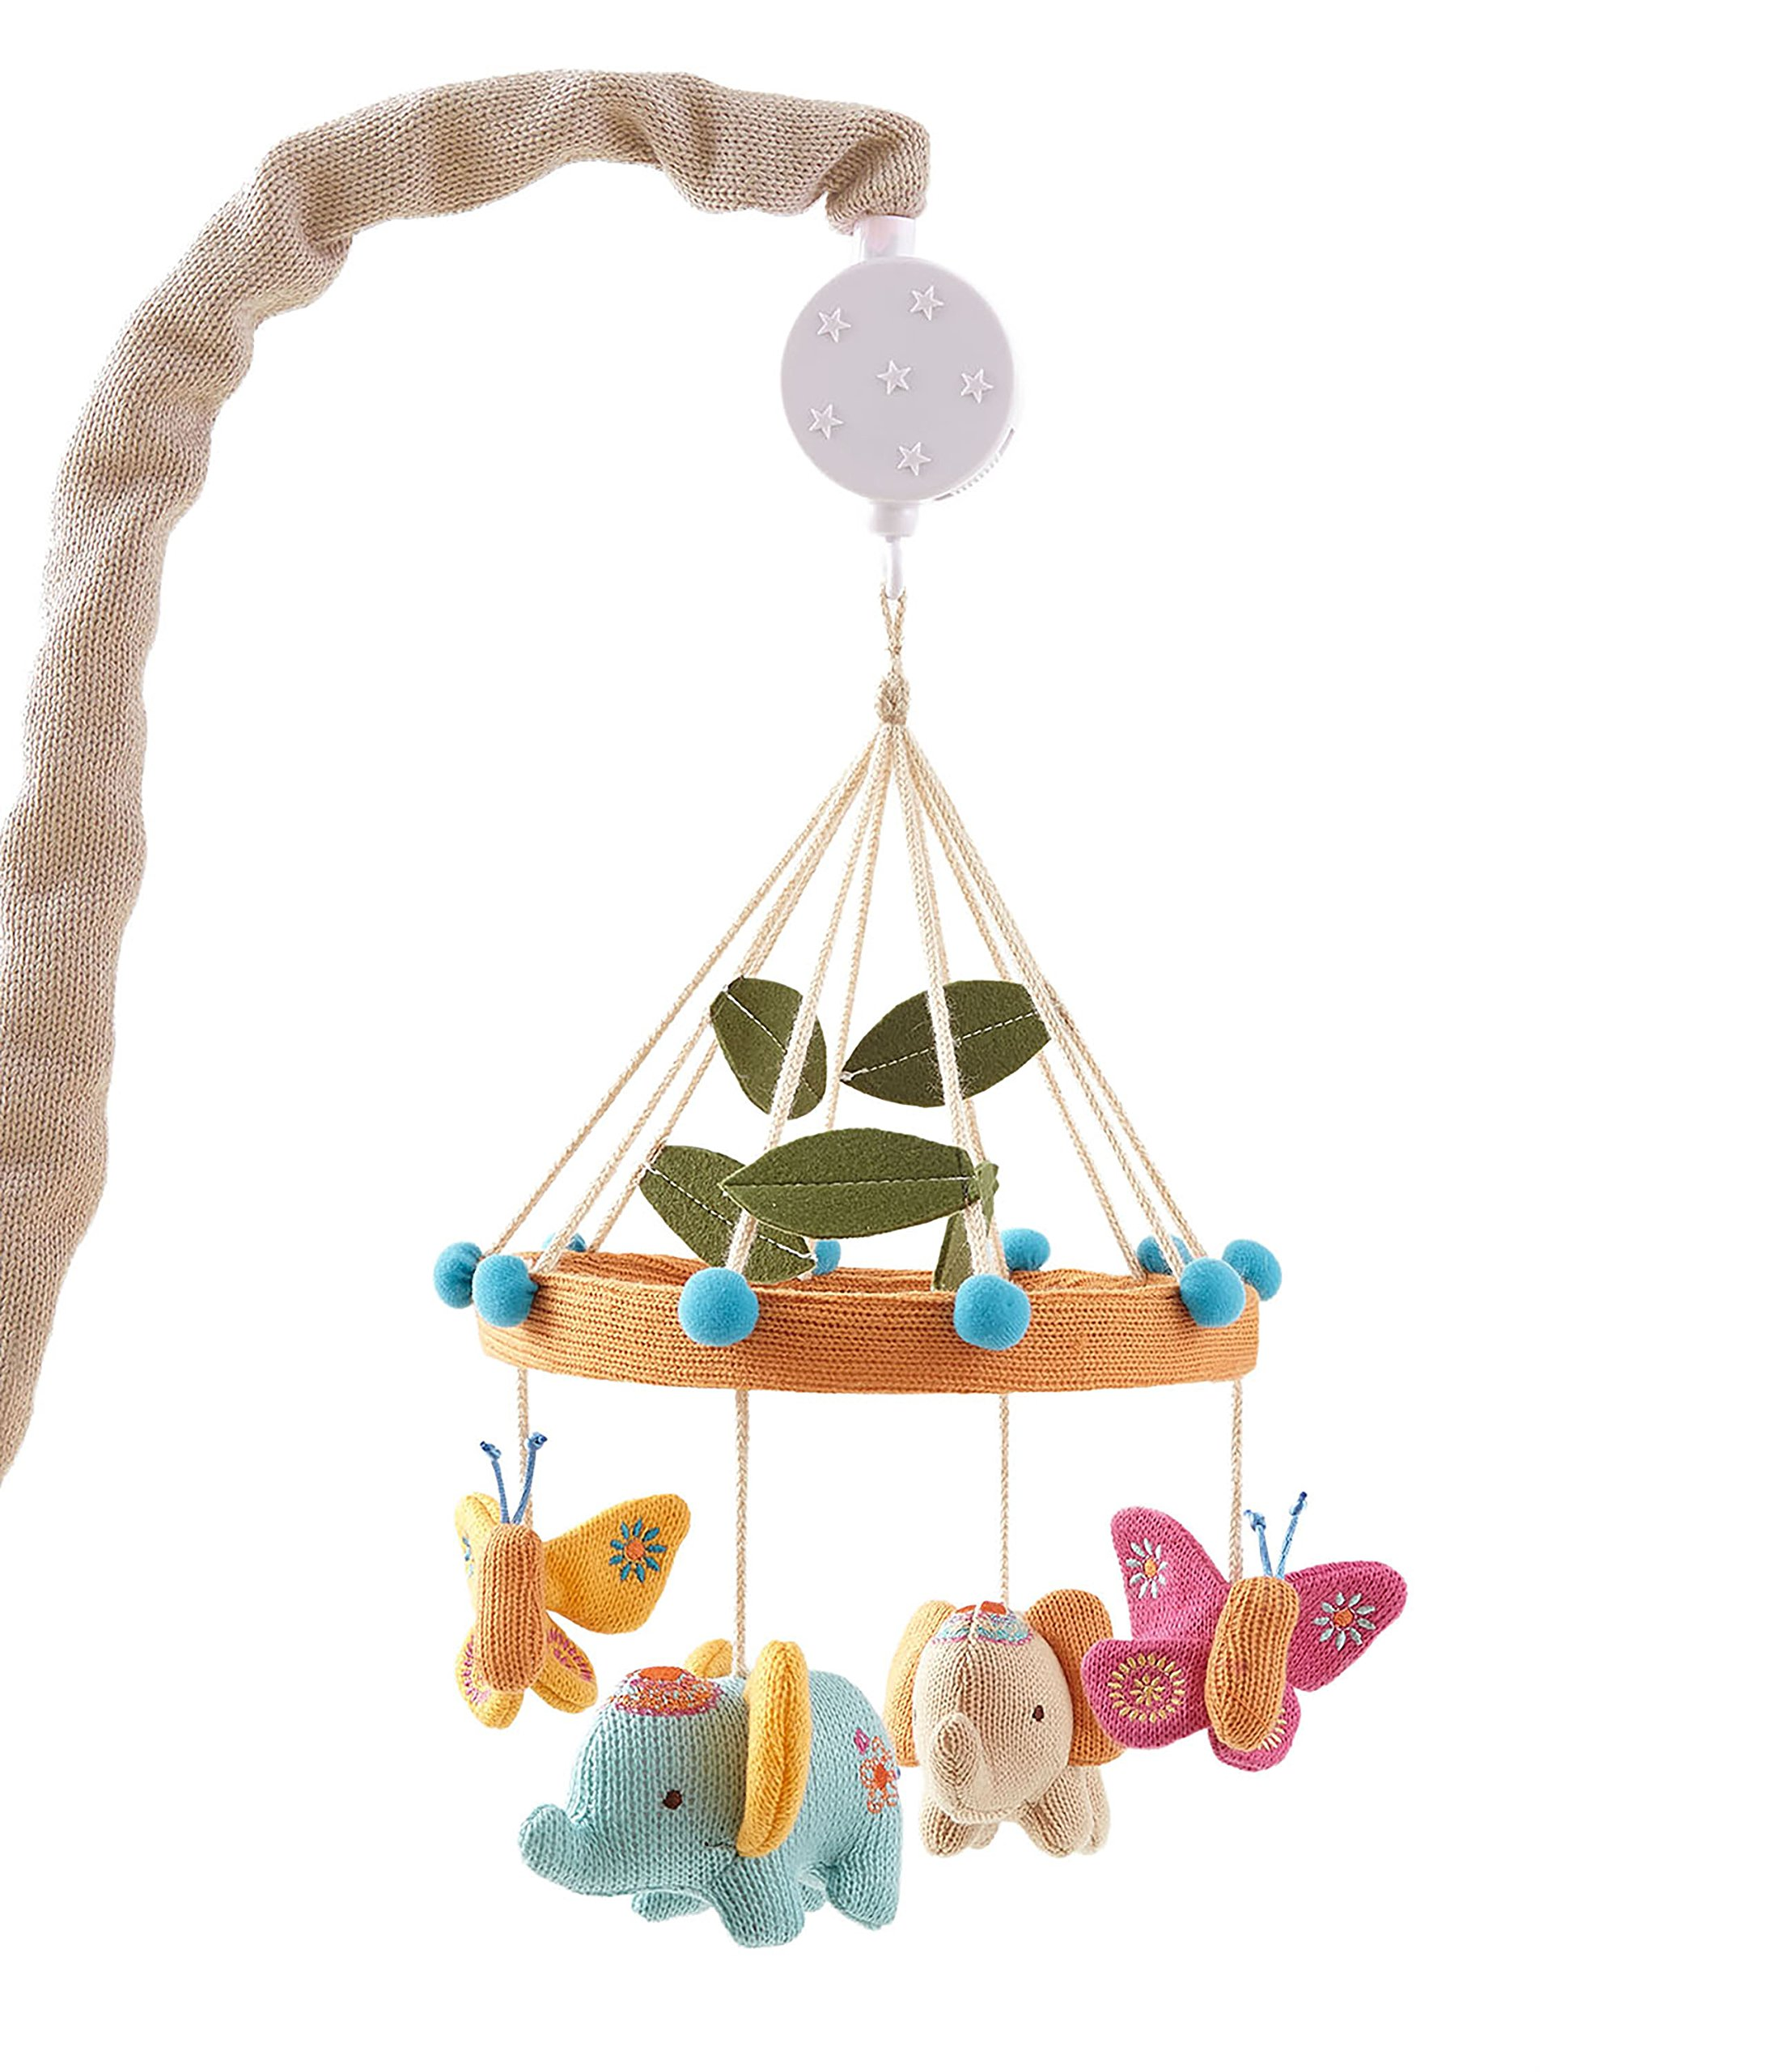 Levtex Home Baby Lullabies Zahara Mobile by Levtex Home